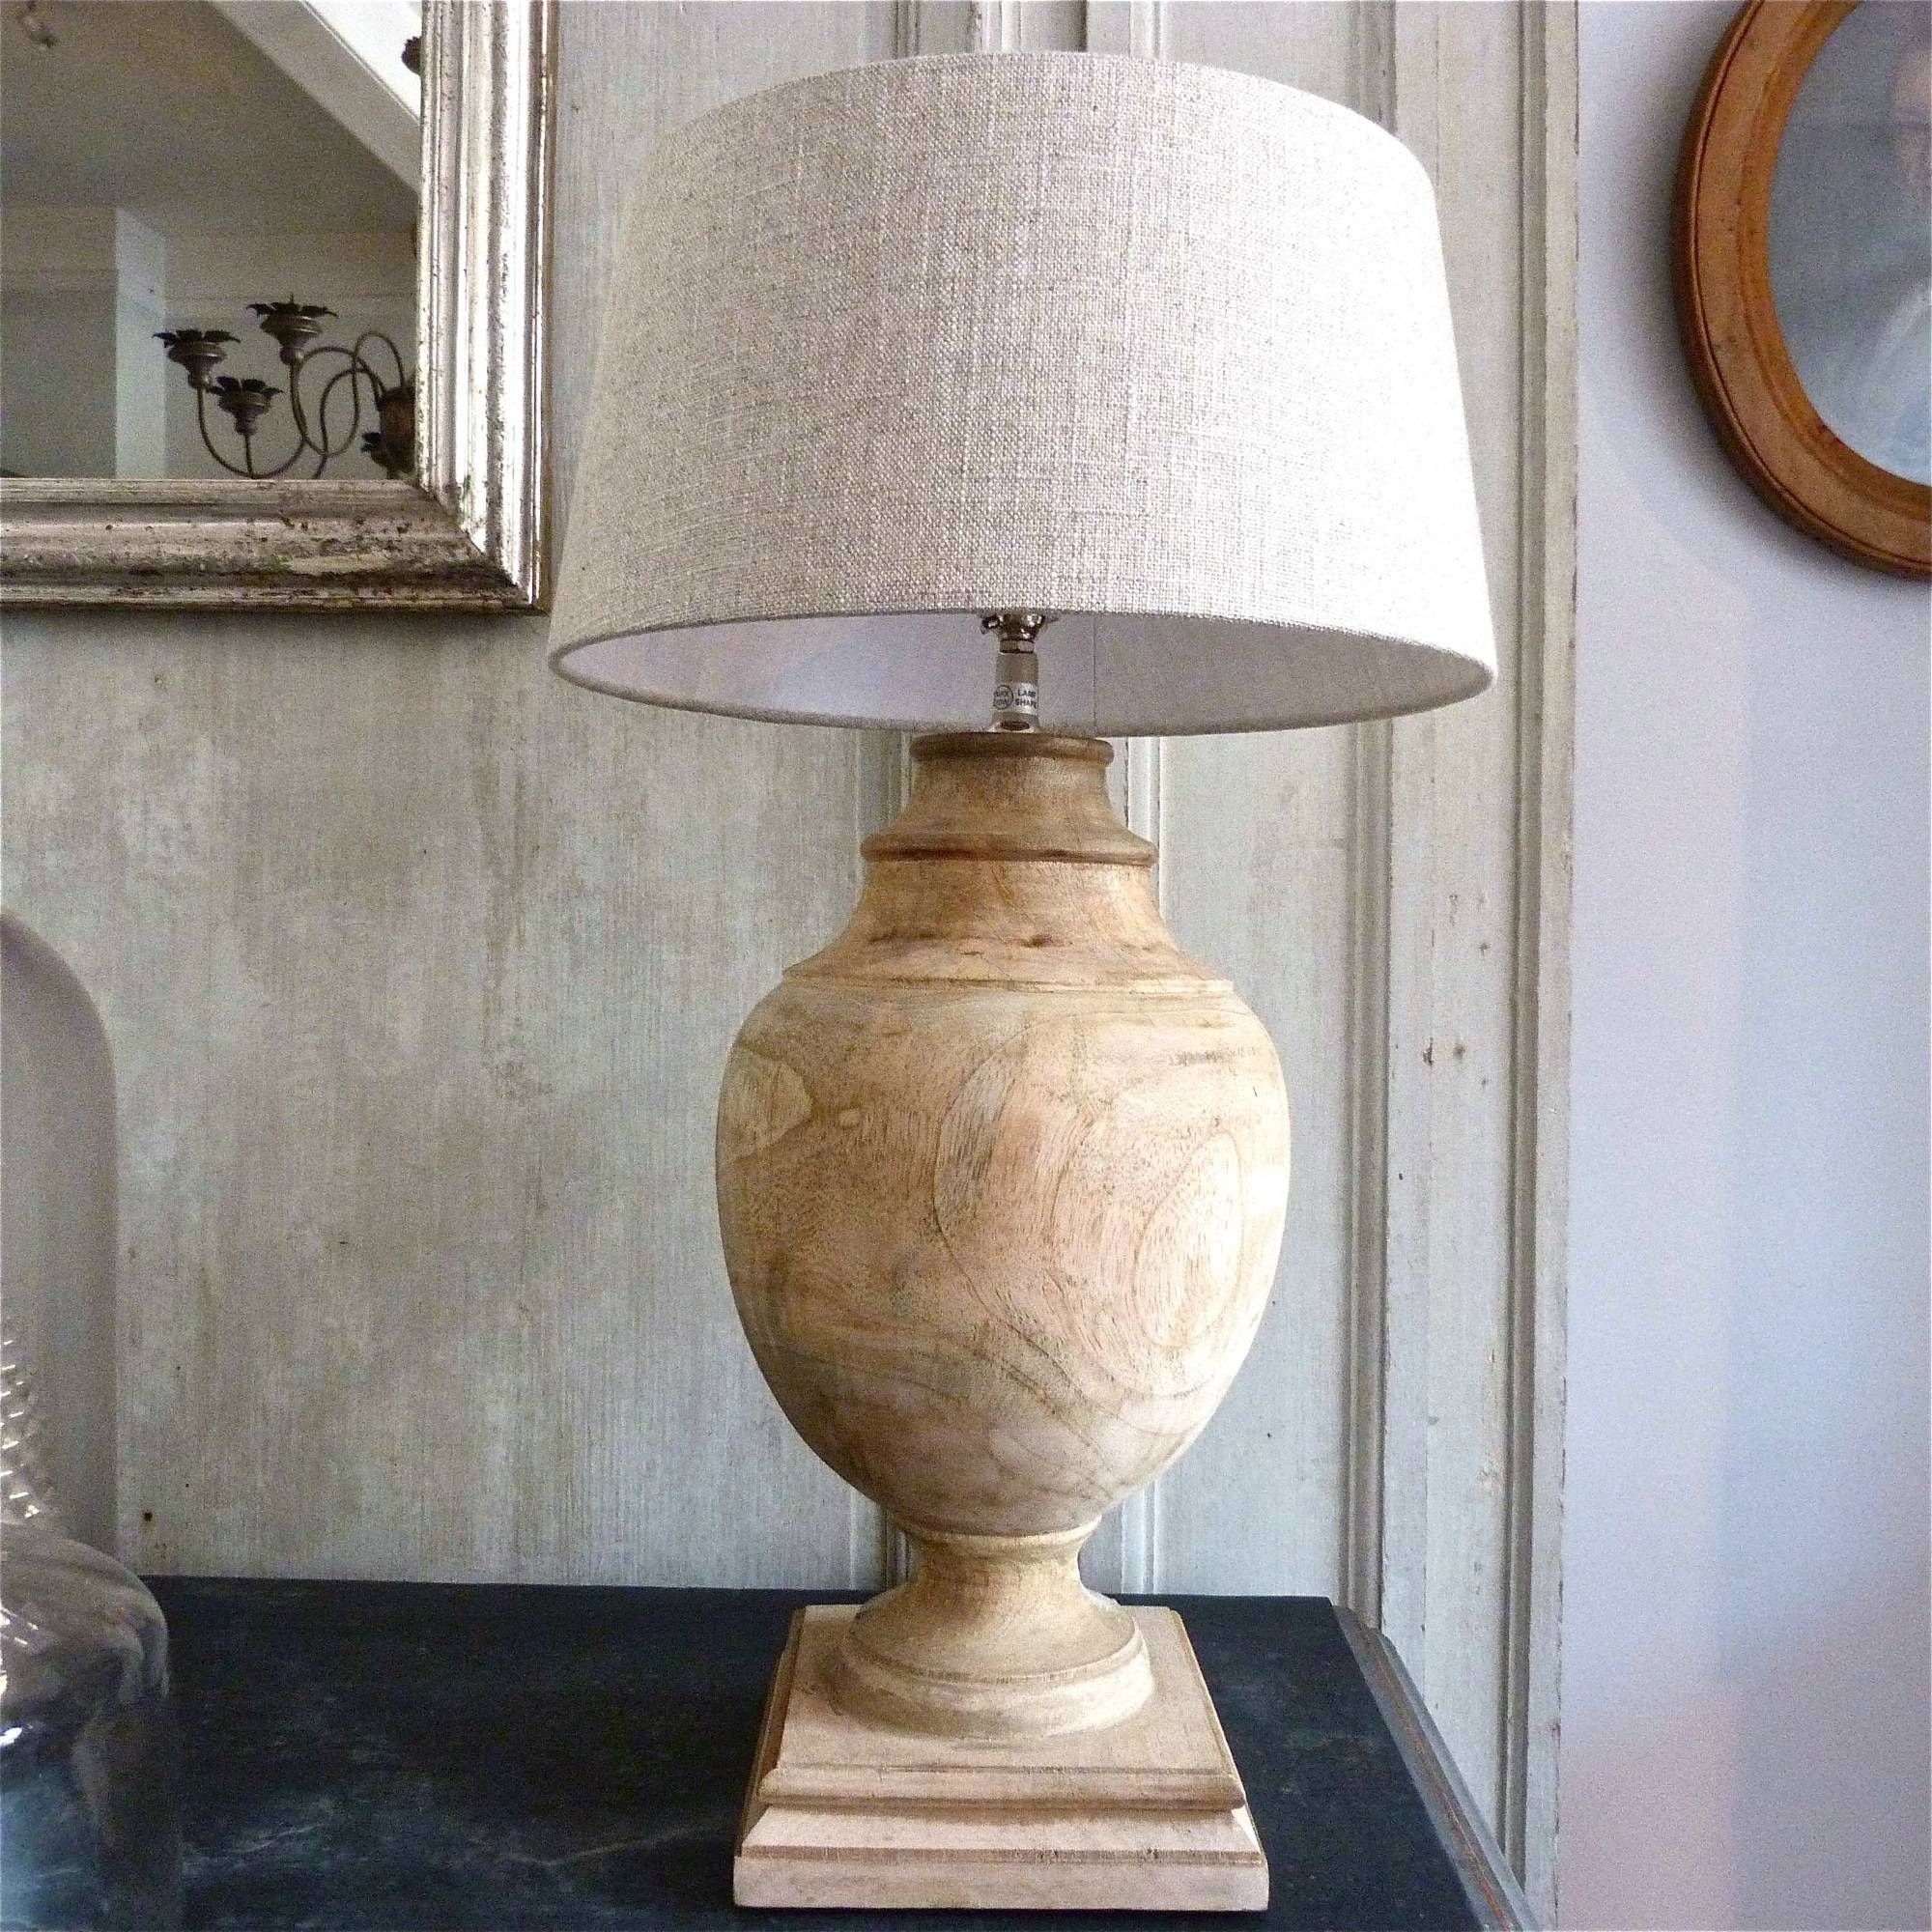 Carved wooden table lamps google search dettagli pinterest carved wooden table lamps google search aloadofball Gallery